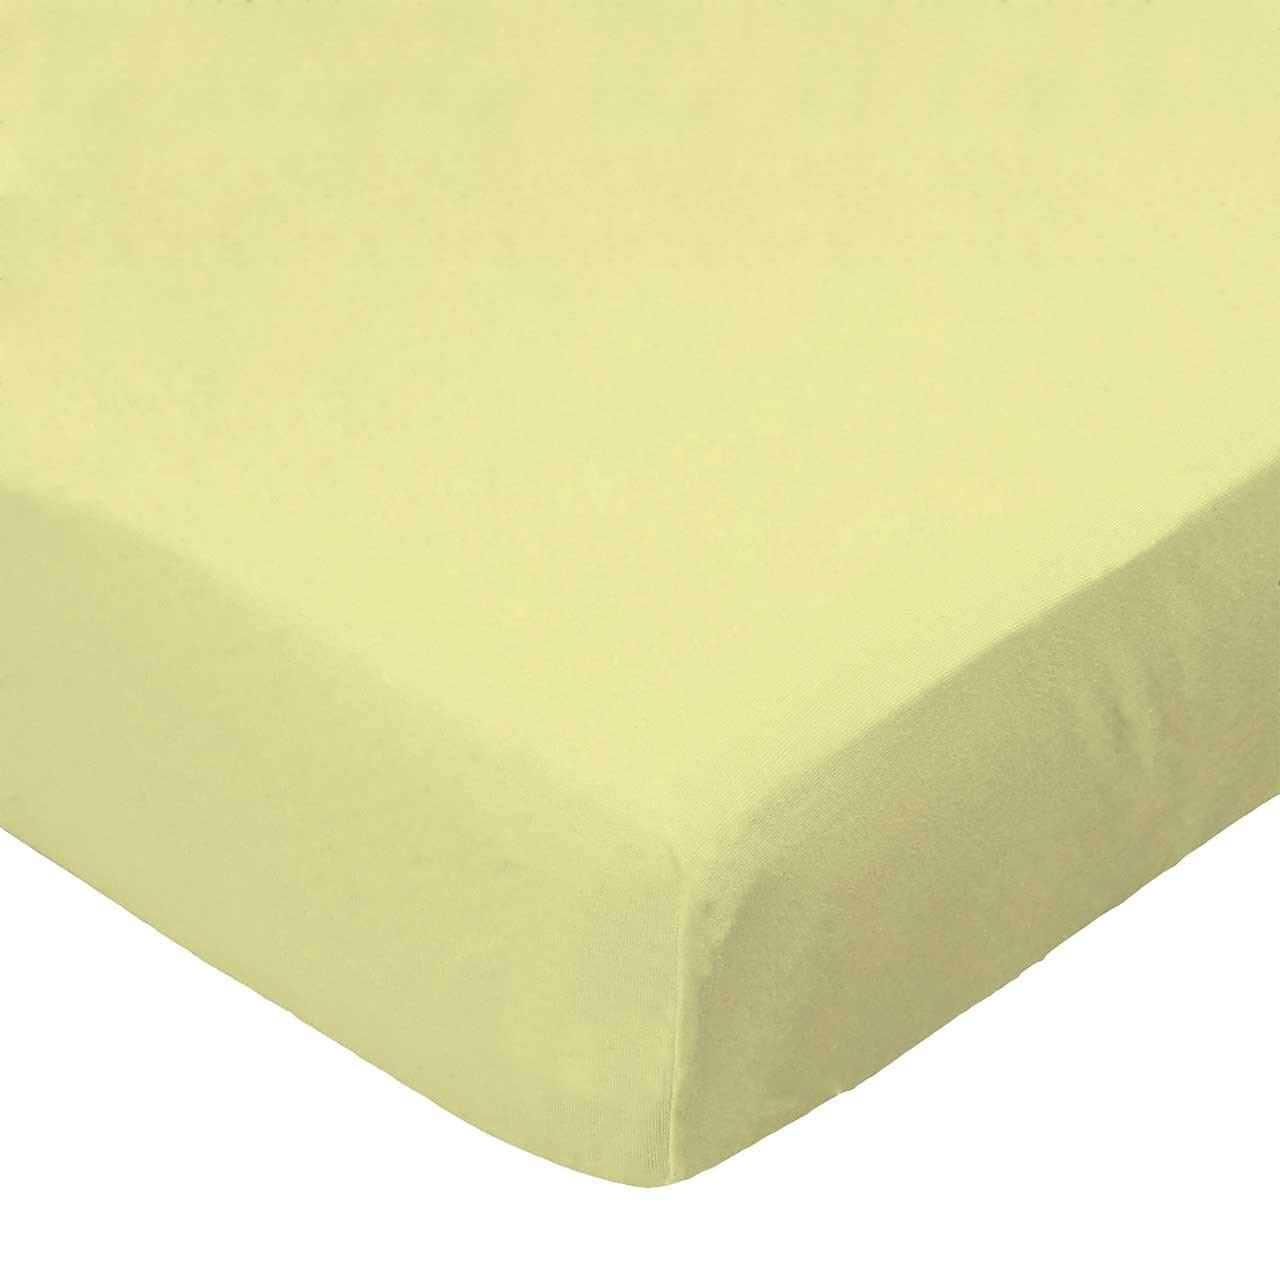 SheetWorld Fitted Pack N Play (Graco) Sheet - Solid Yellow Woven - Made In USA by sheetworld   B0029ZGU62